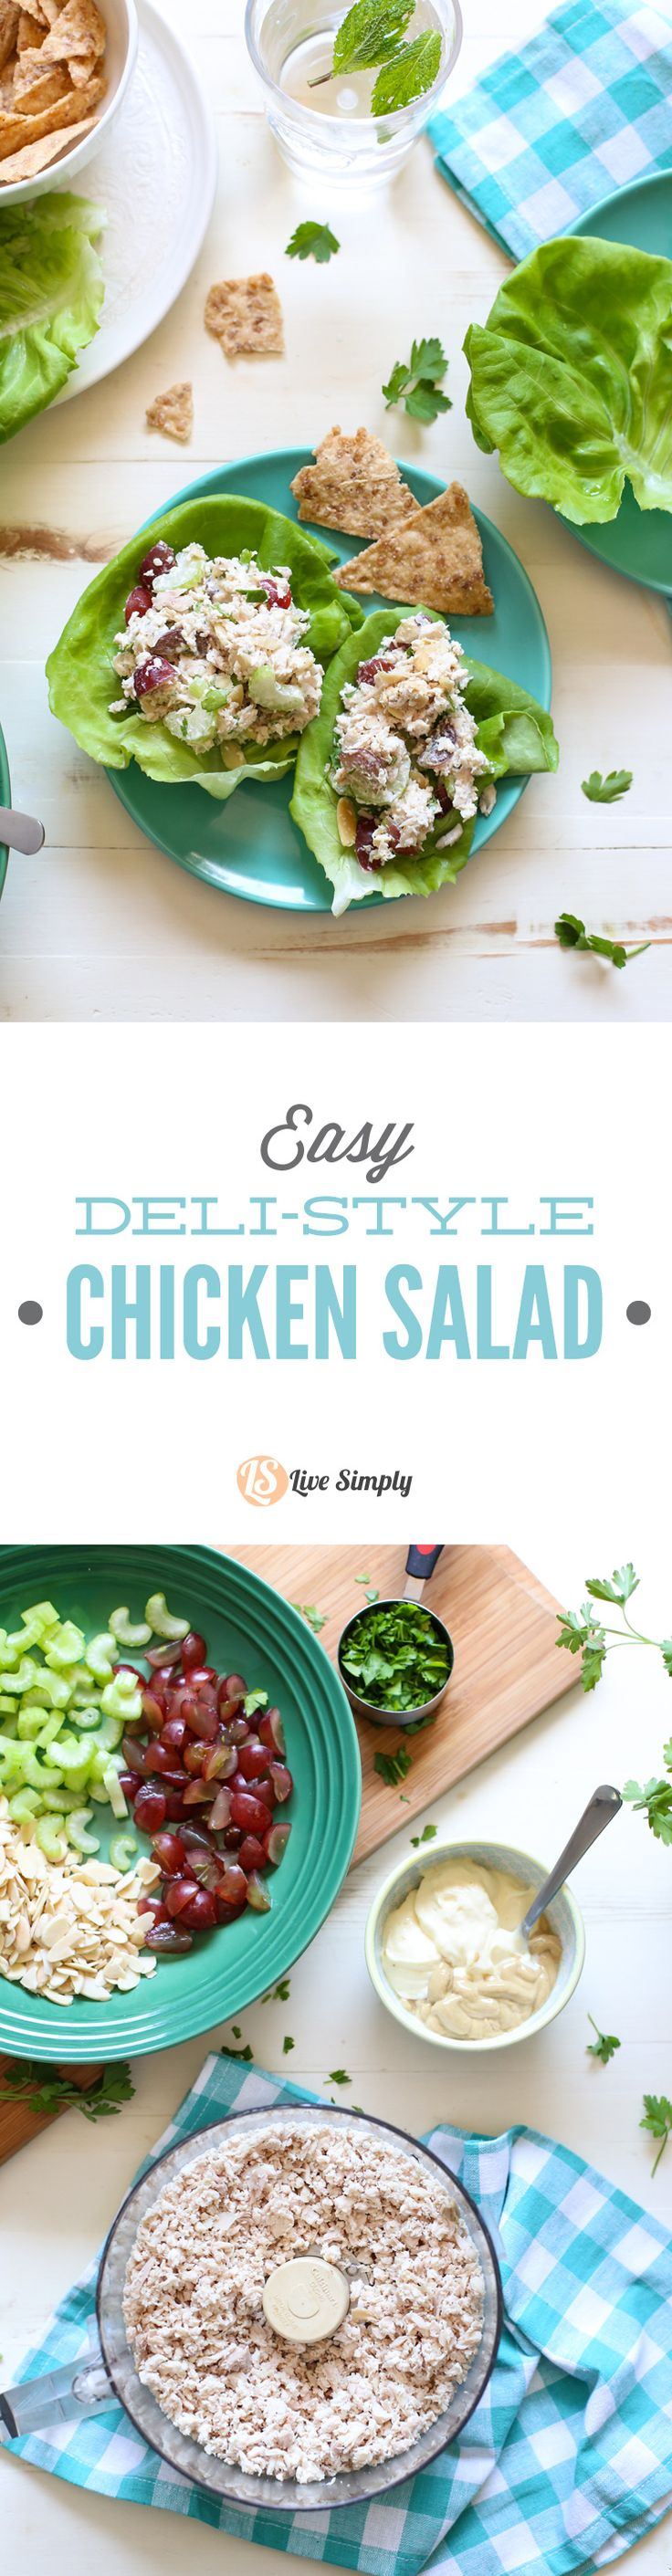 Super easy deli-style chicken salad! This recipe only requires 5 minutes of hands-on time. 100% healthy real food ingredients. http://livesimply.me/2015/05/27/easy-deli-style-chicken-salad/